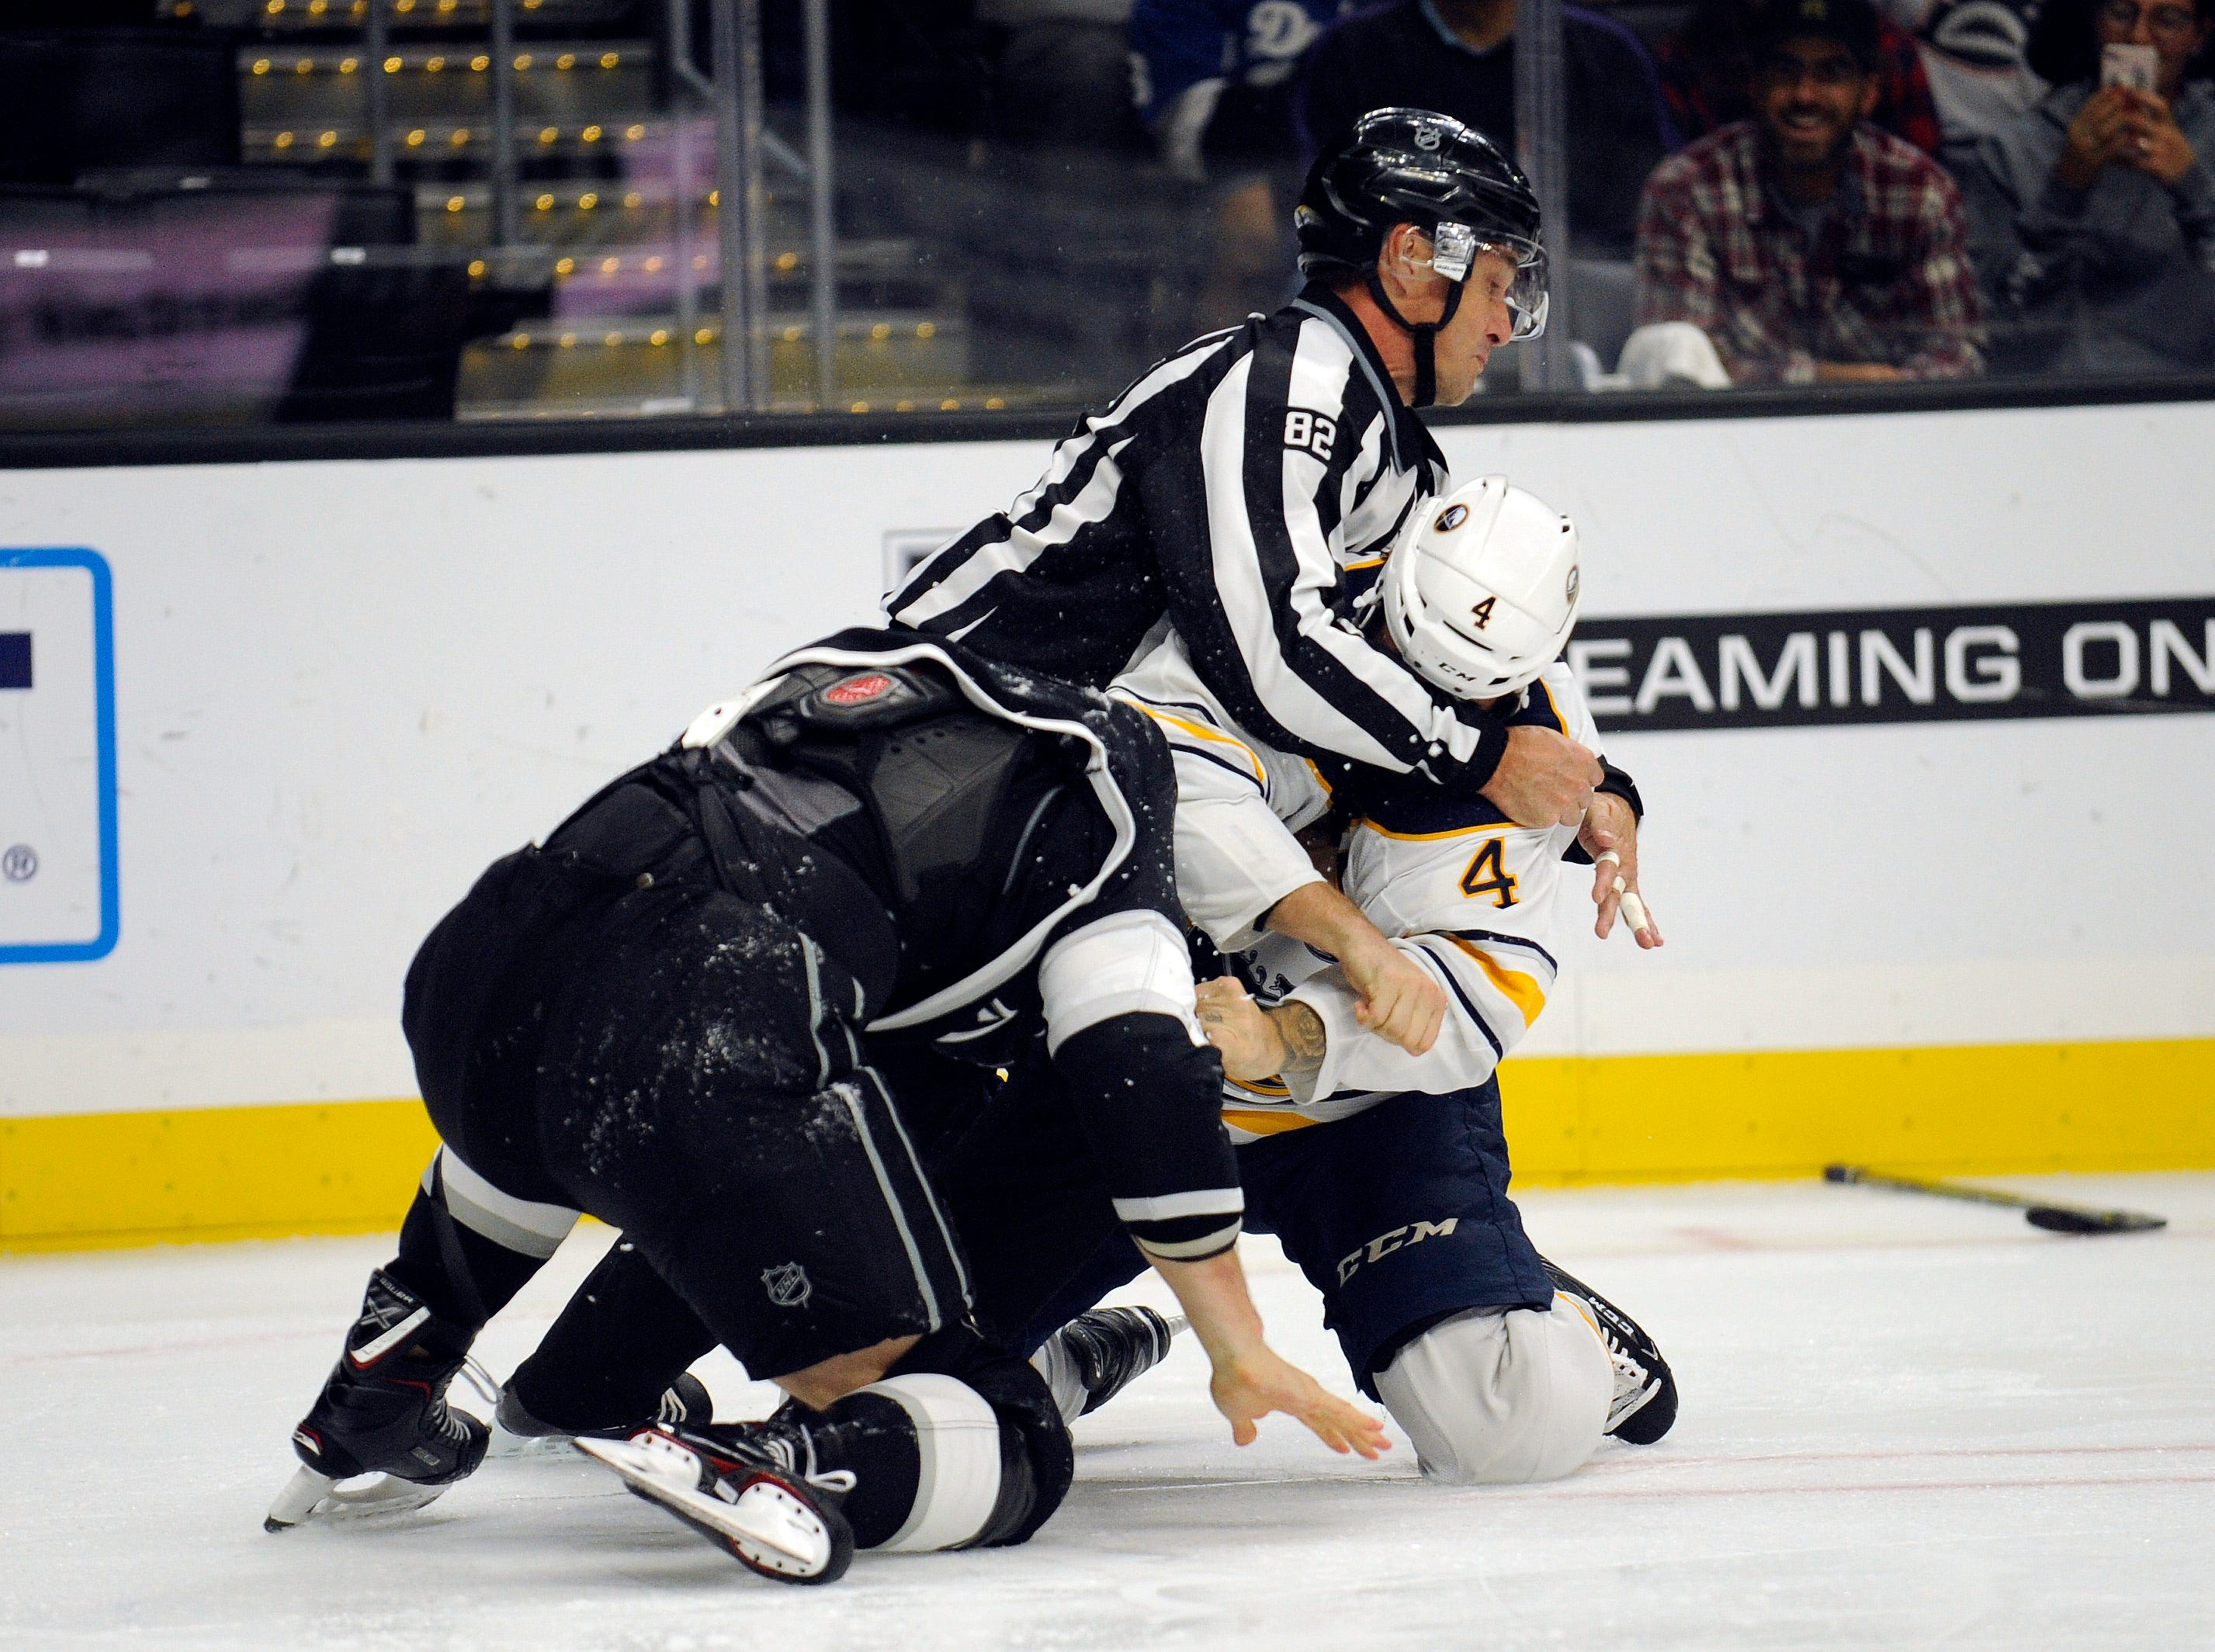 Oct. 20: Los Angeles Kings' Kyle Clifford vs. Buffalo Sabres' Zach Bogosian.